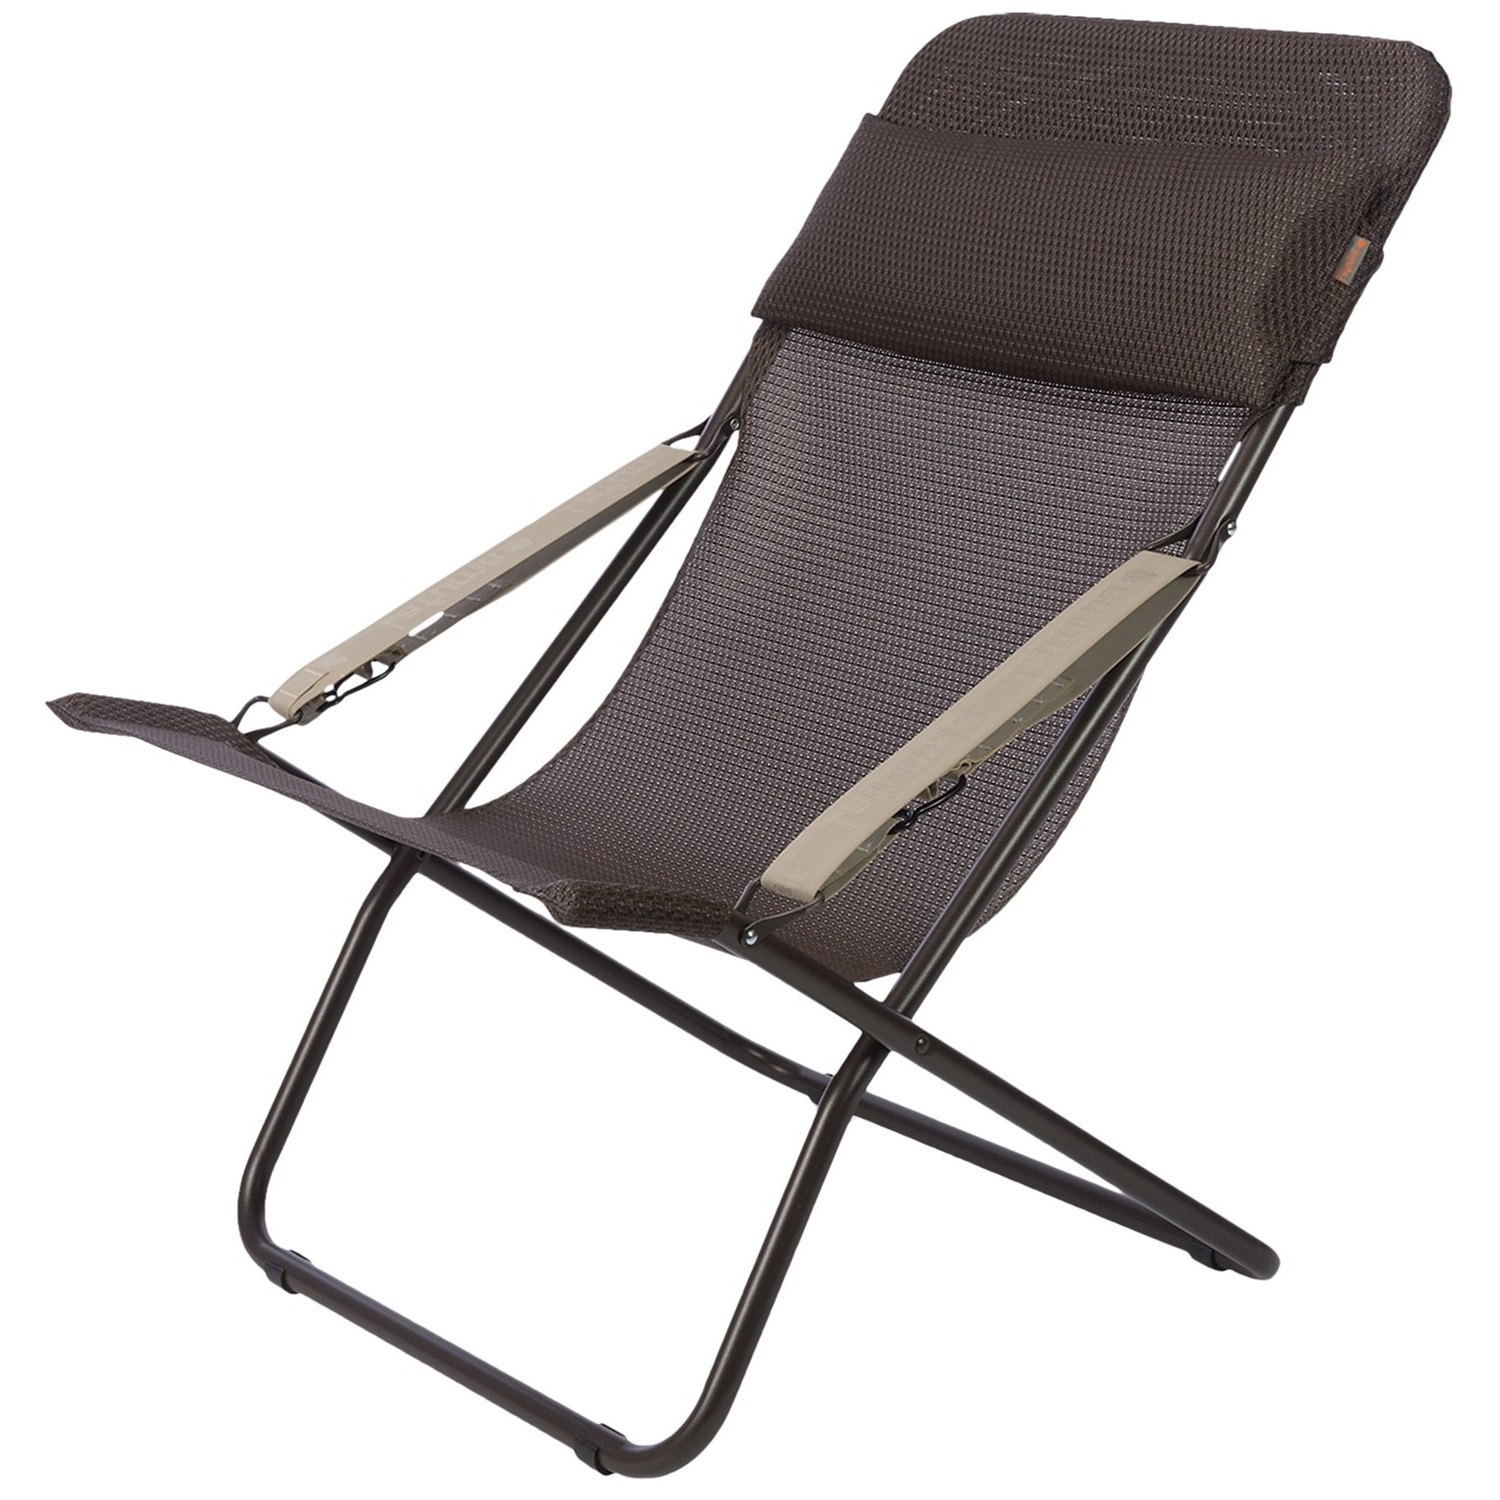 15 Collection of Chaise Lounge Chairs At Target